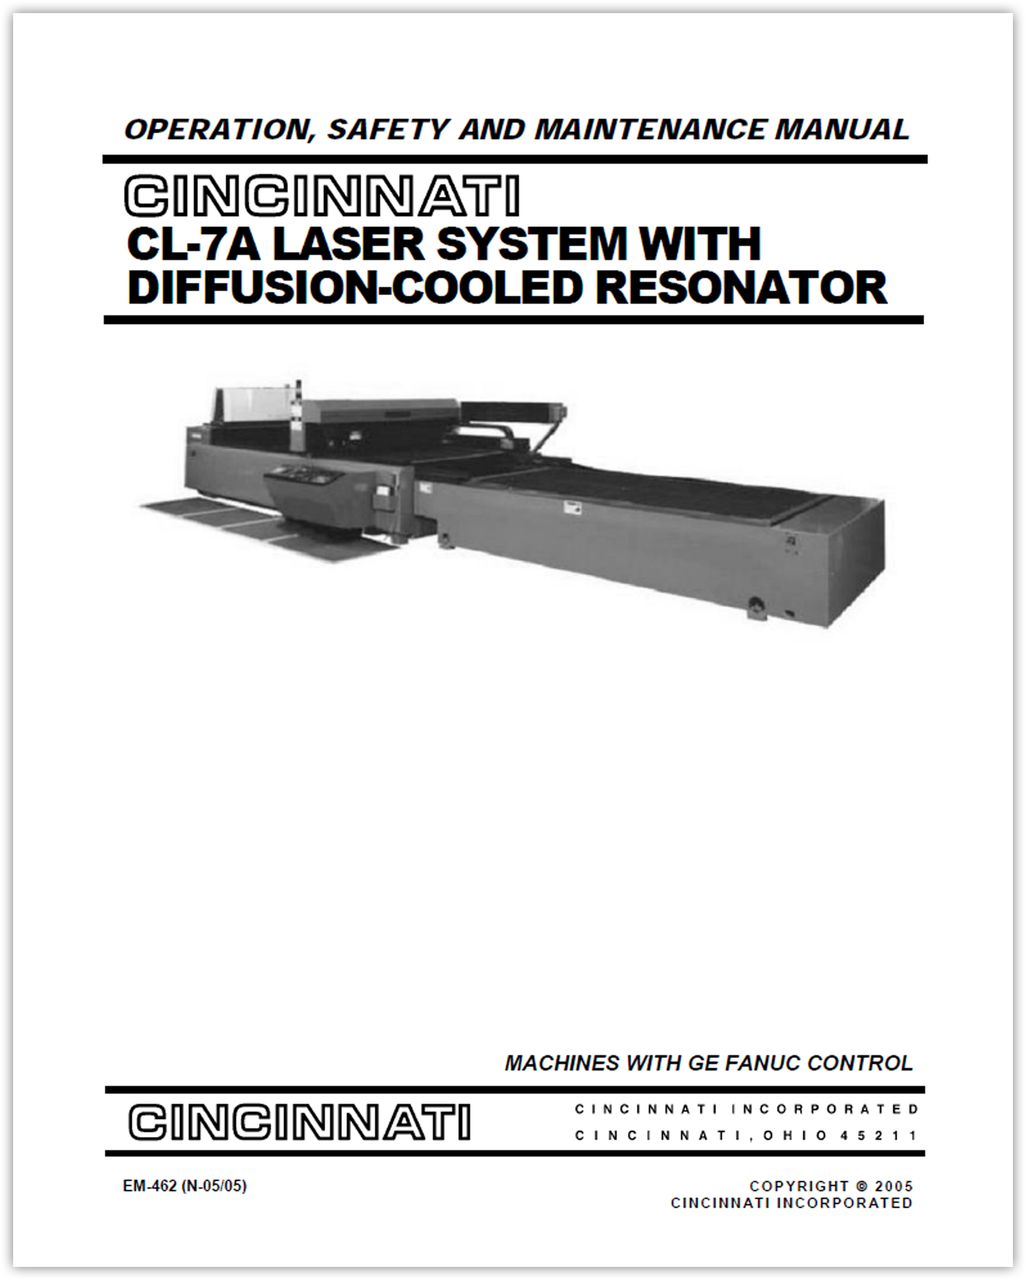 EM-462 (N-05-05) CL-7A Laser System With Diffusion-Cooled Resonator - Operation, Safety And Maintenance Manual - Machines With Ge Fanuc Control